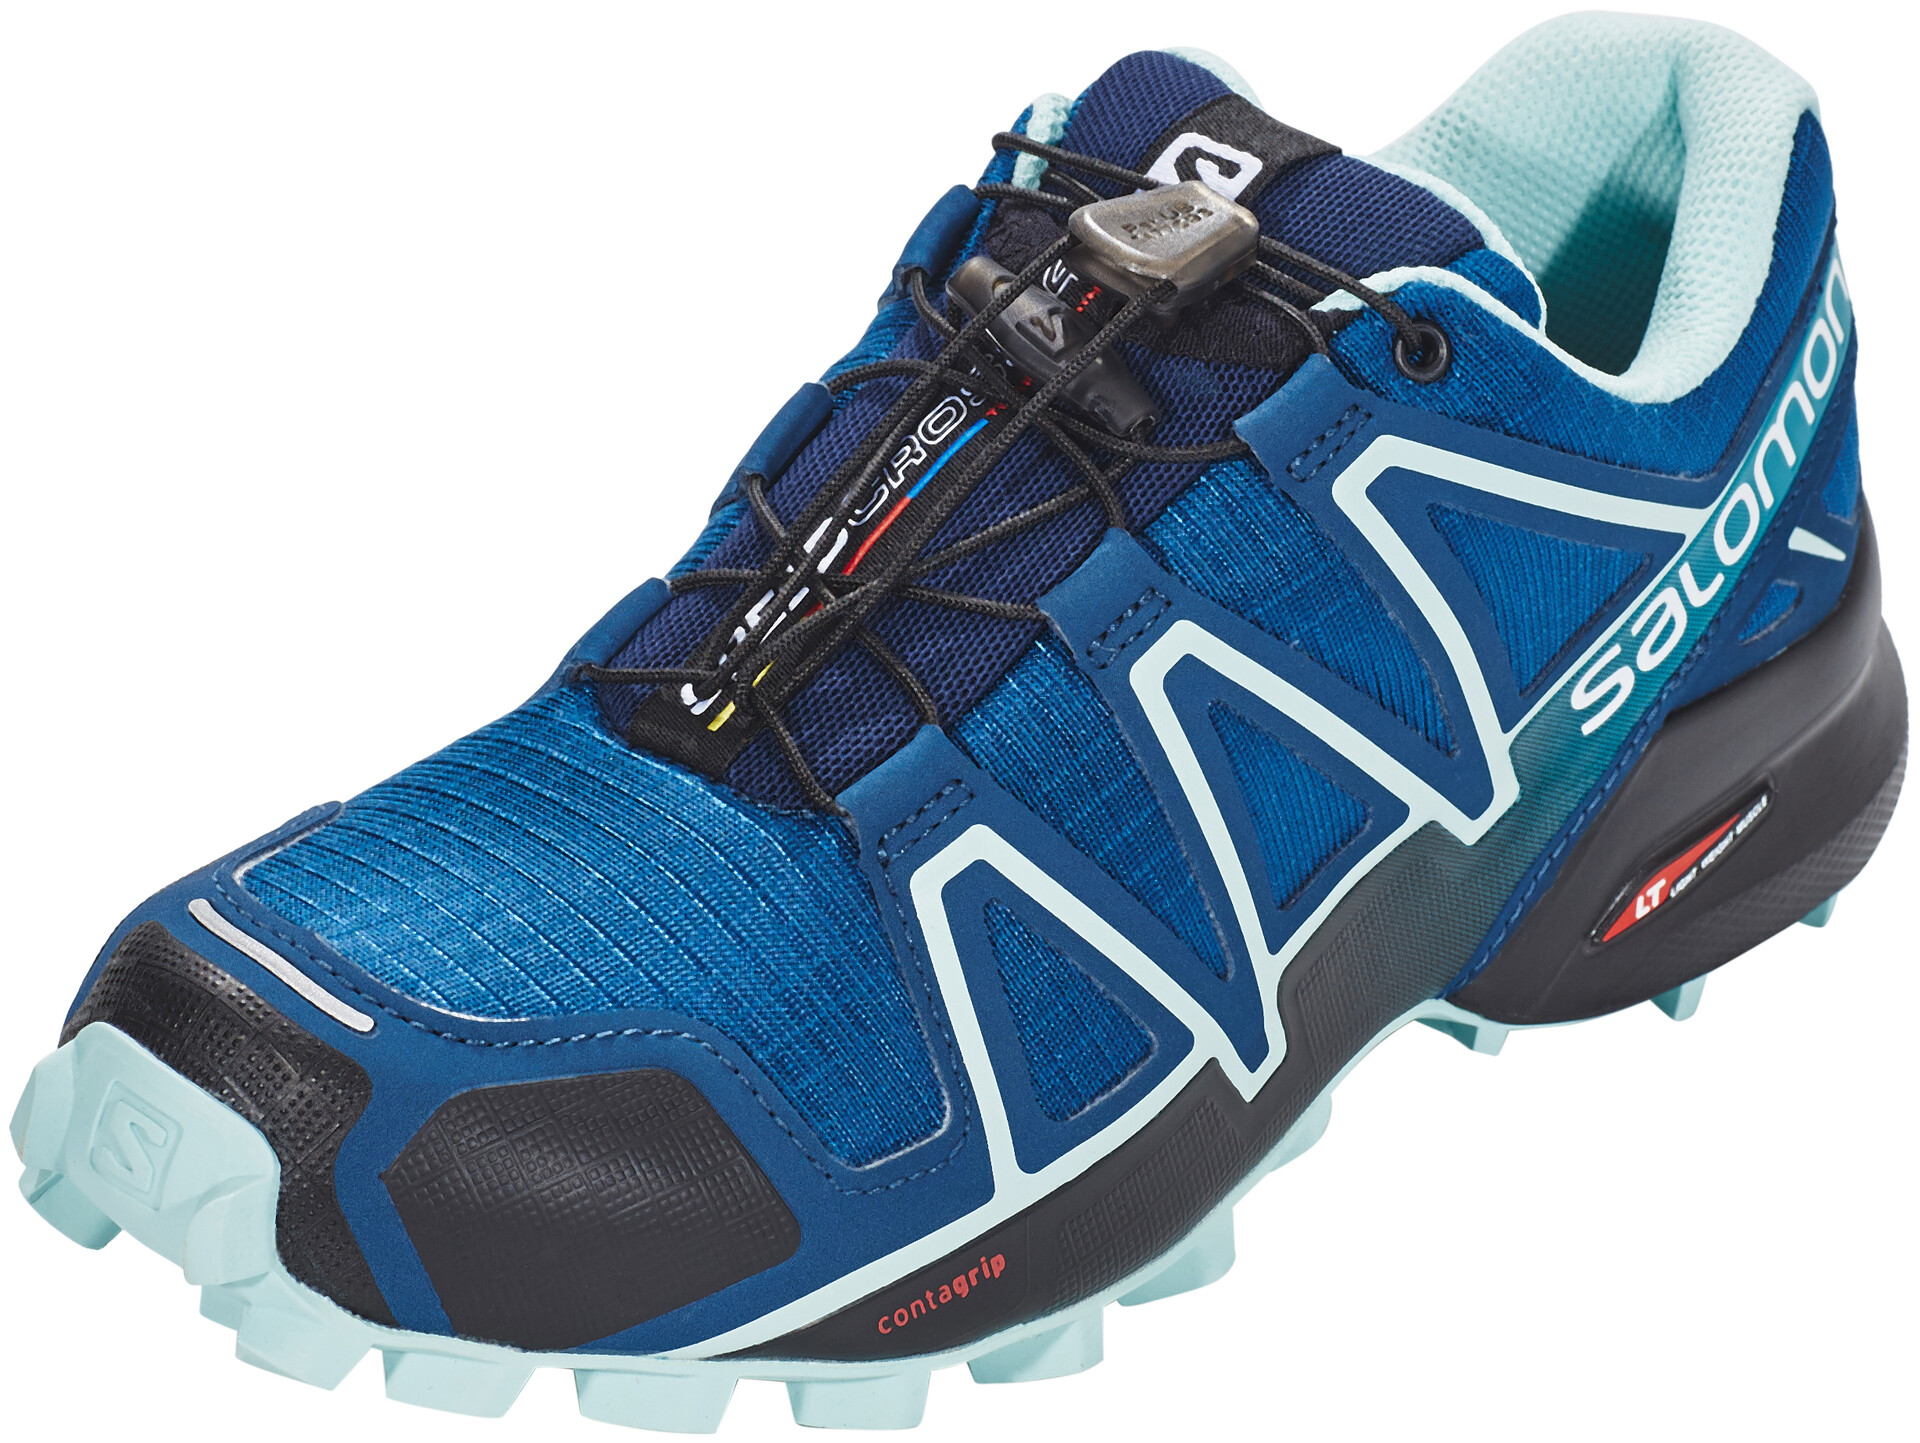 Salomon Speedcross 4 Shoes Dame poseidoneggshell blueblack